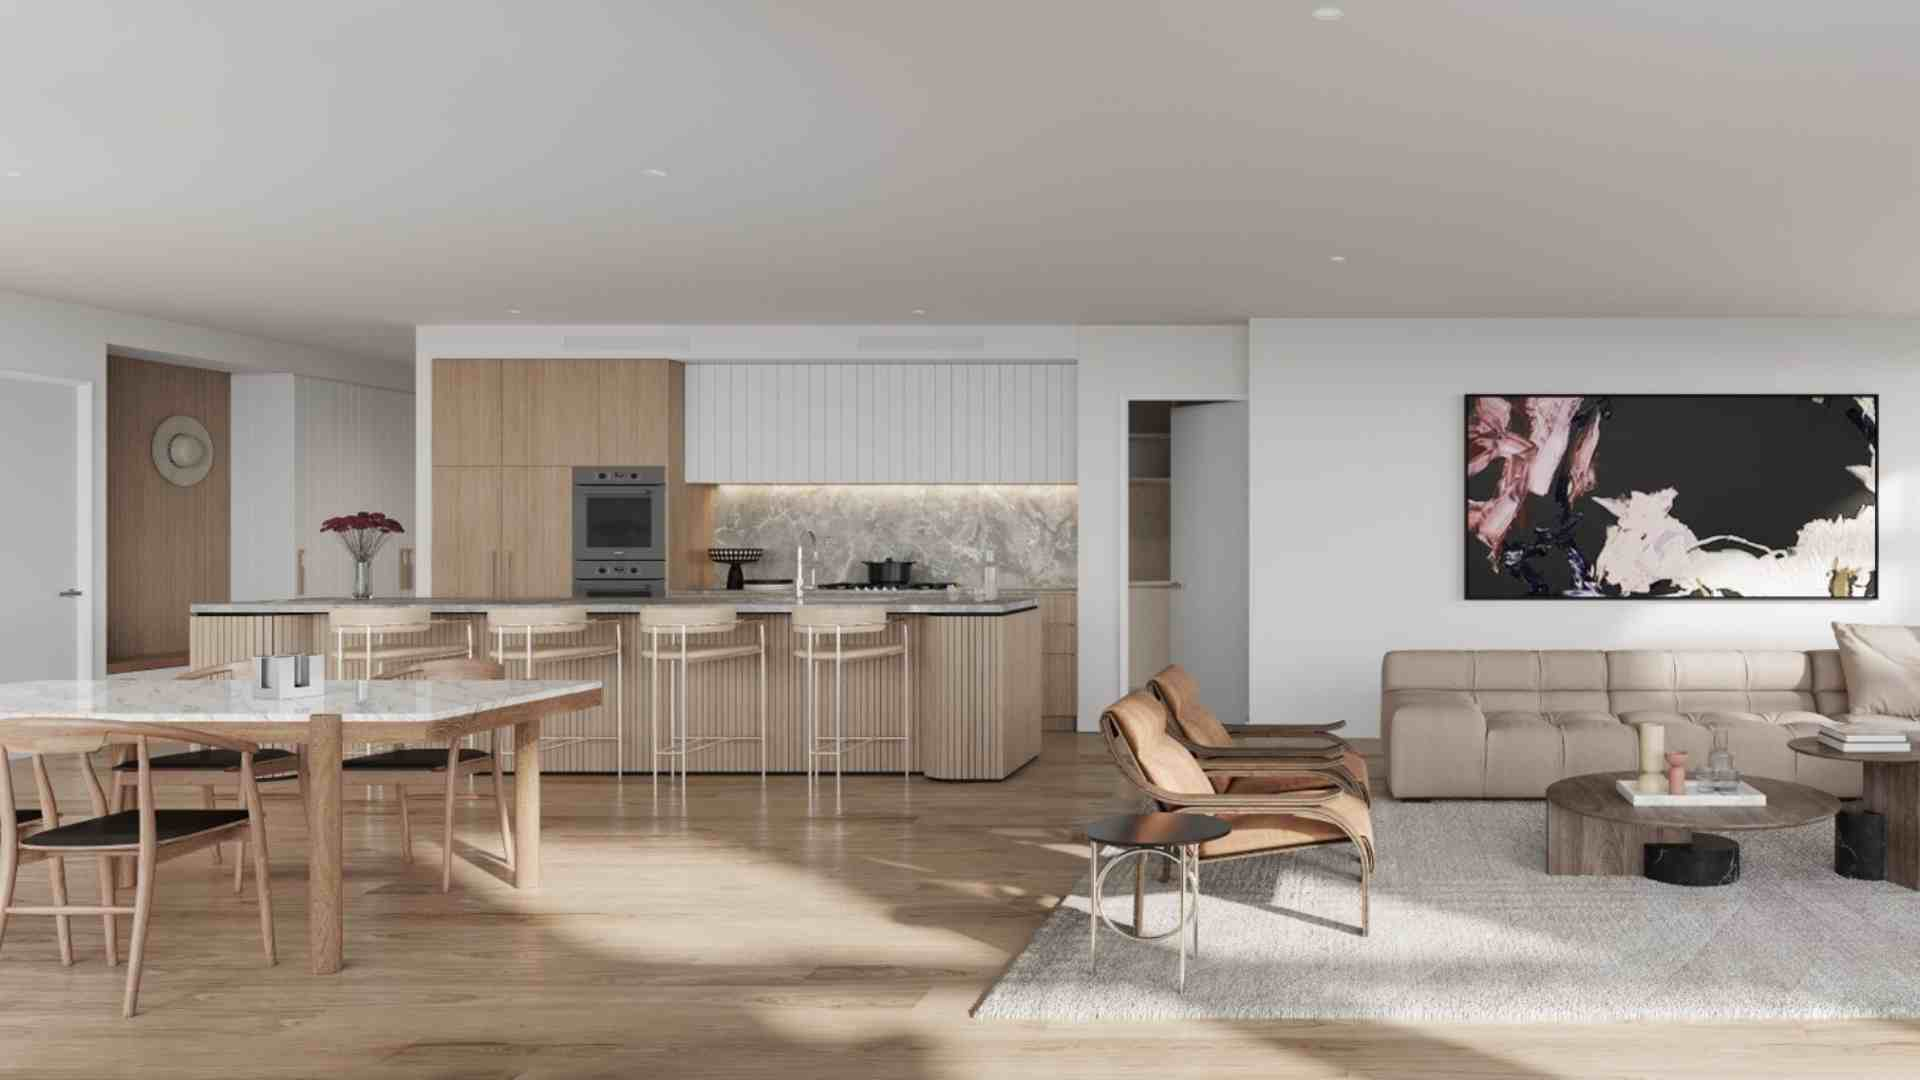 open kitchen, dining area, living room, beige and white interior